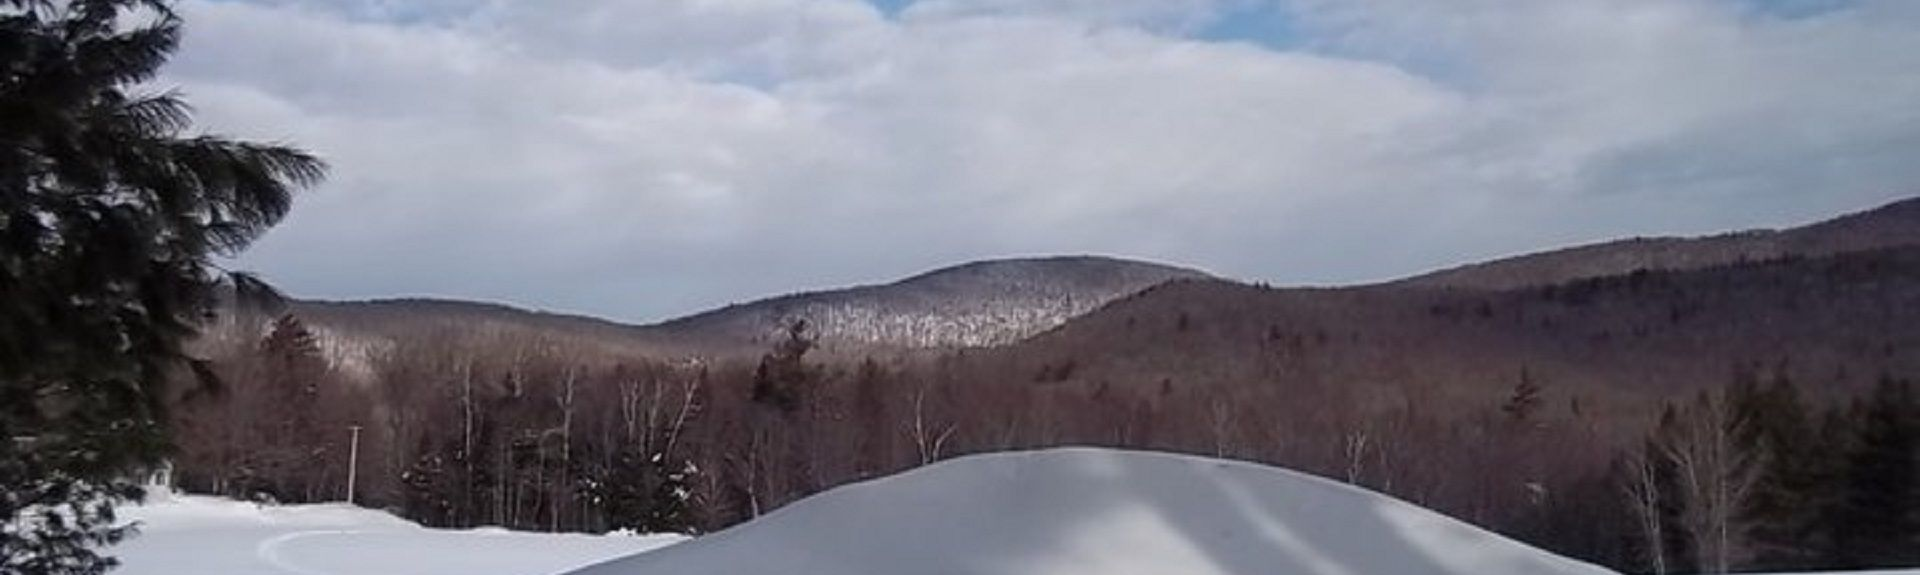 Mount Snow Valley, Vermont, United States of America